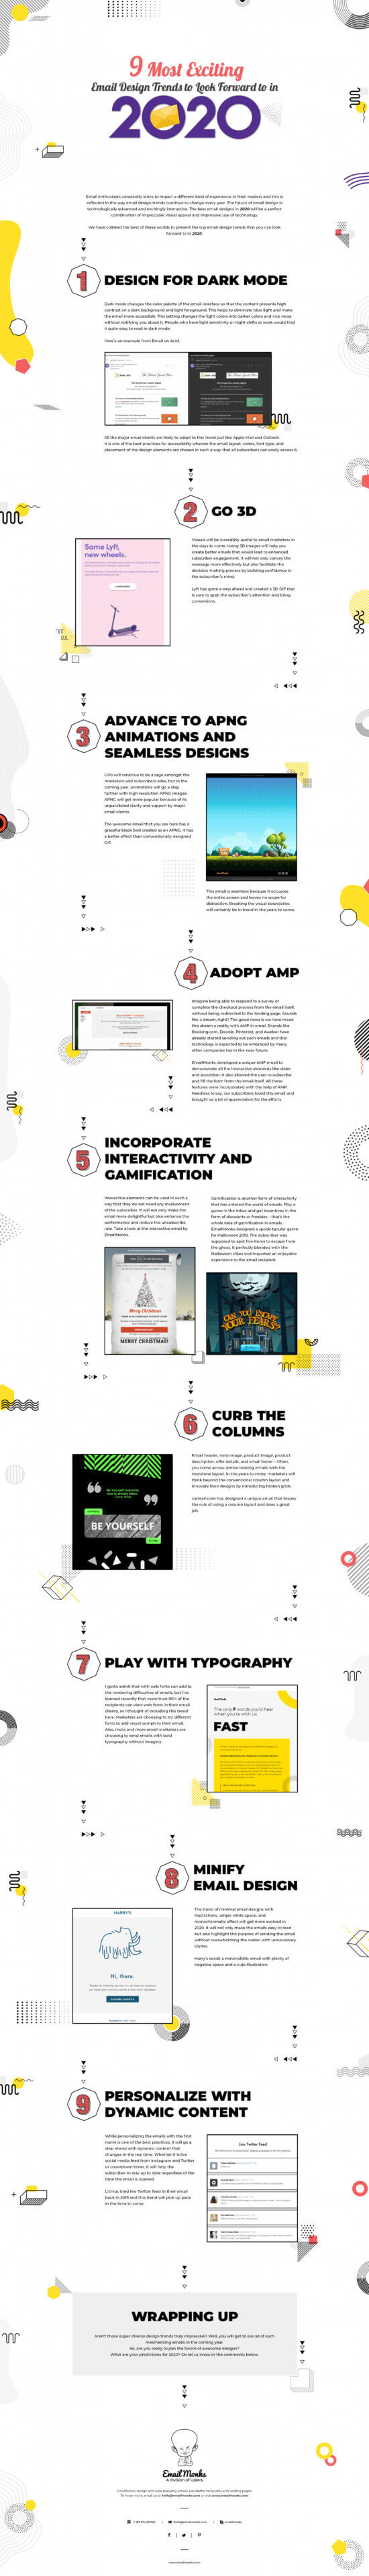 Email_Design_Trends_2020-3